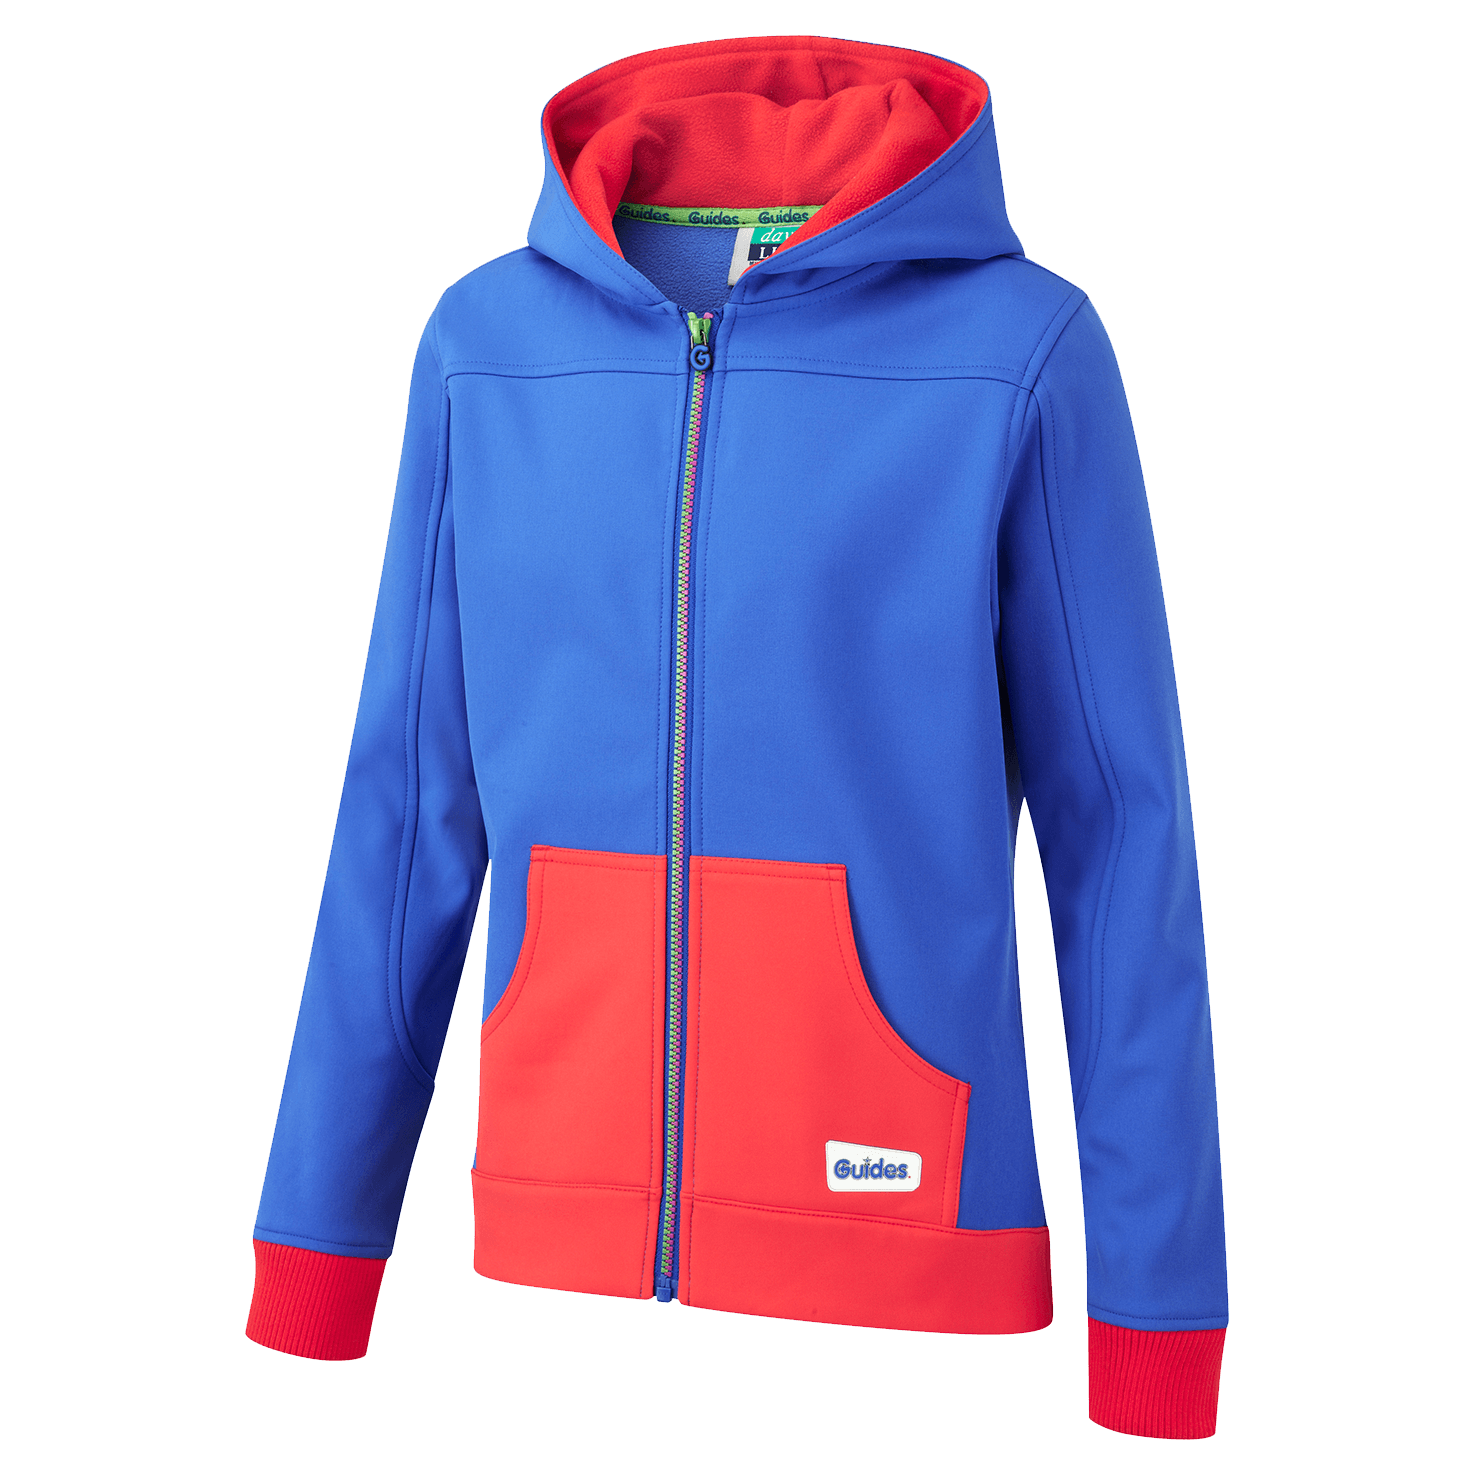 Guides Hoodie - Swifts Uniforms